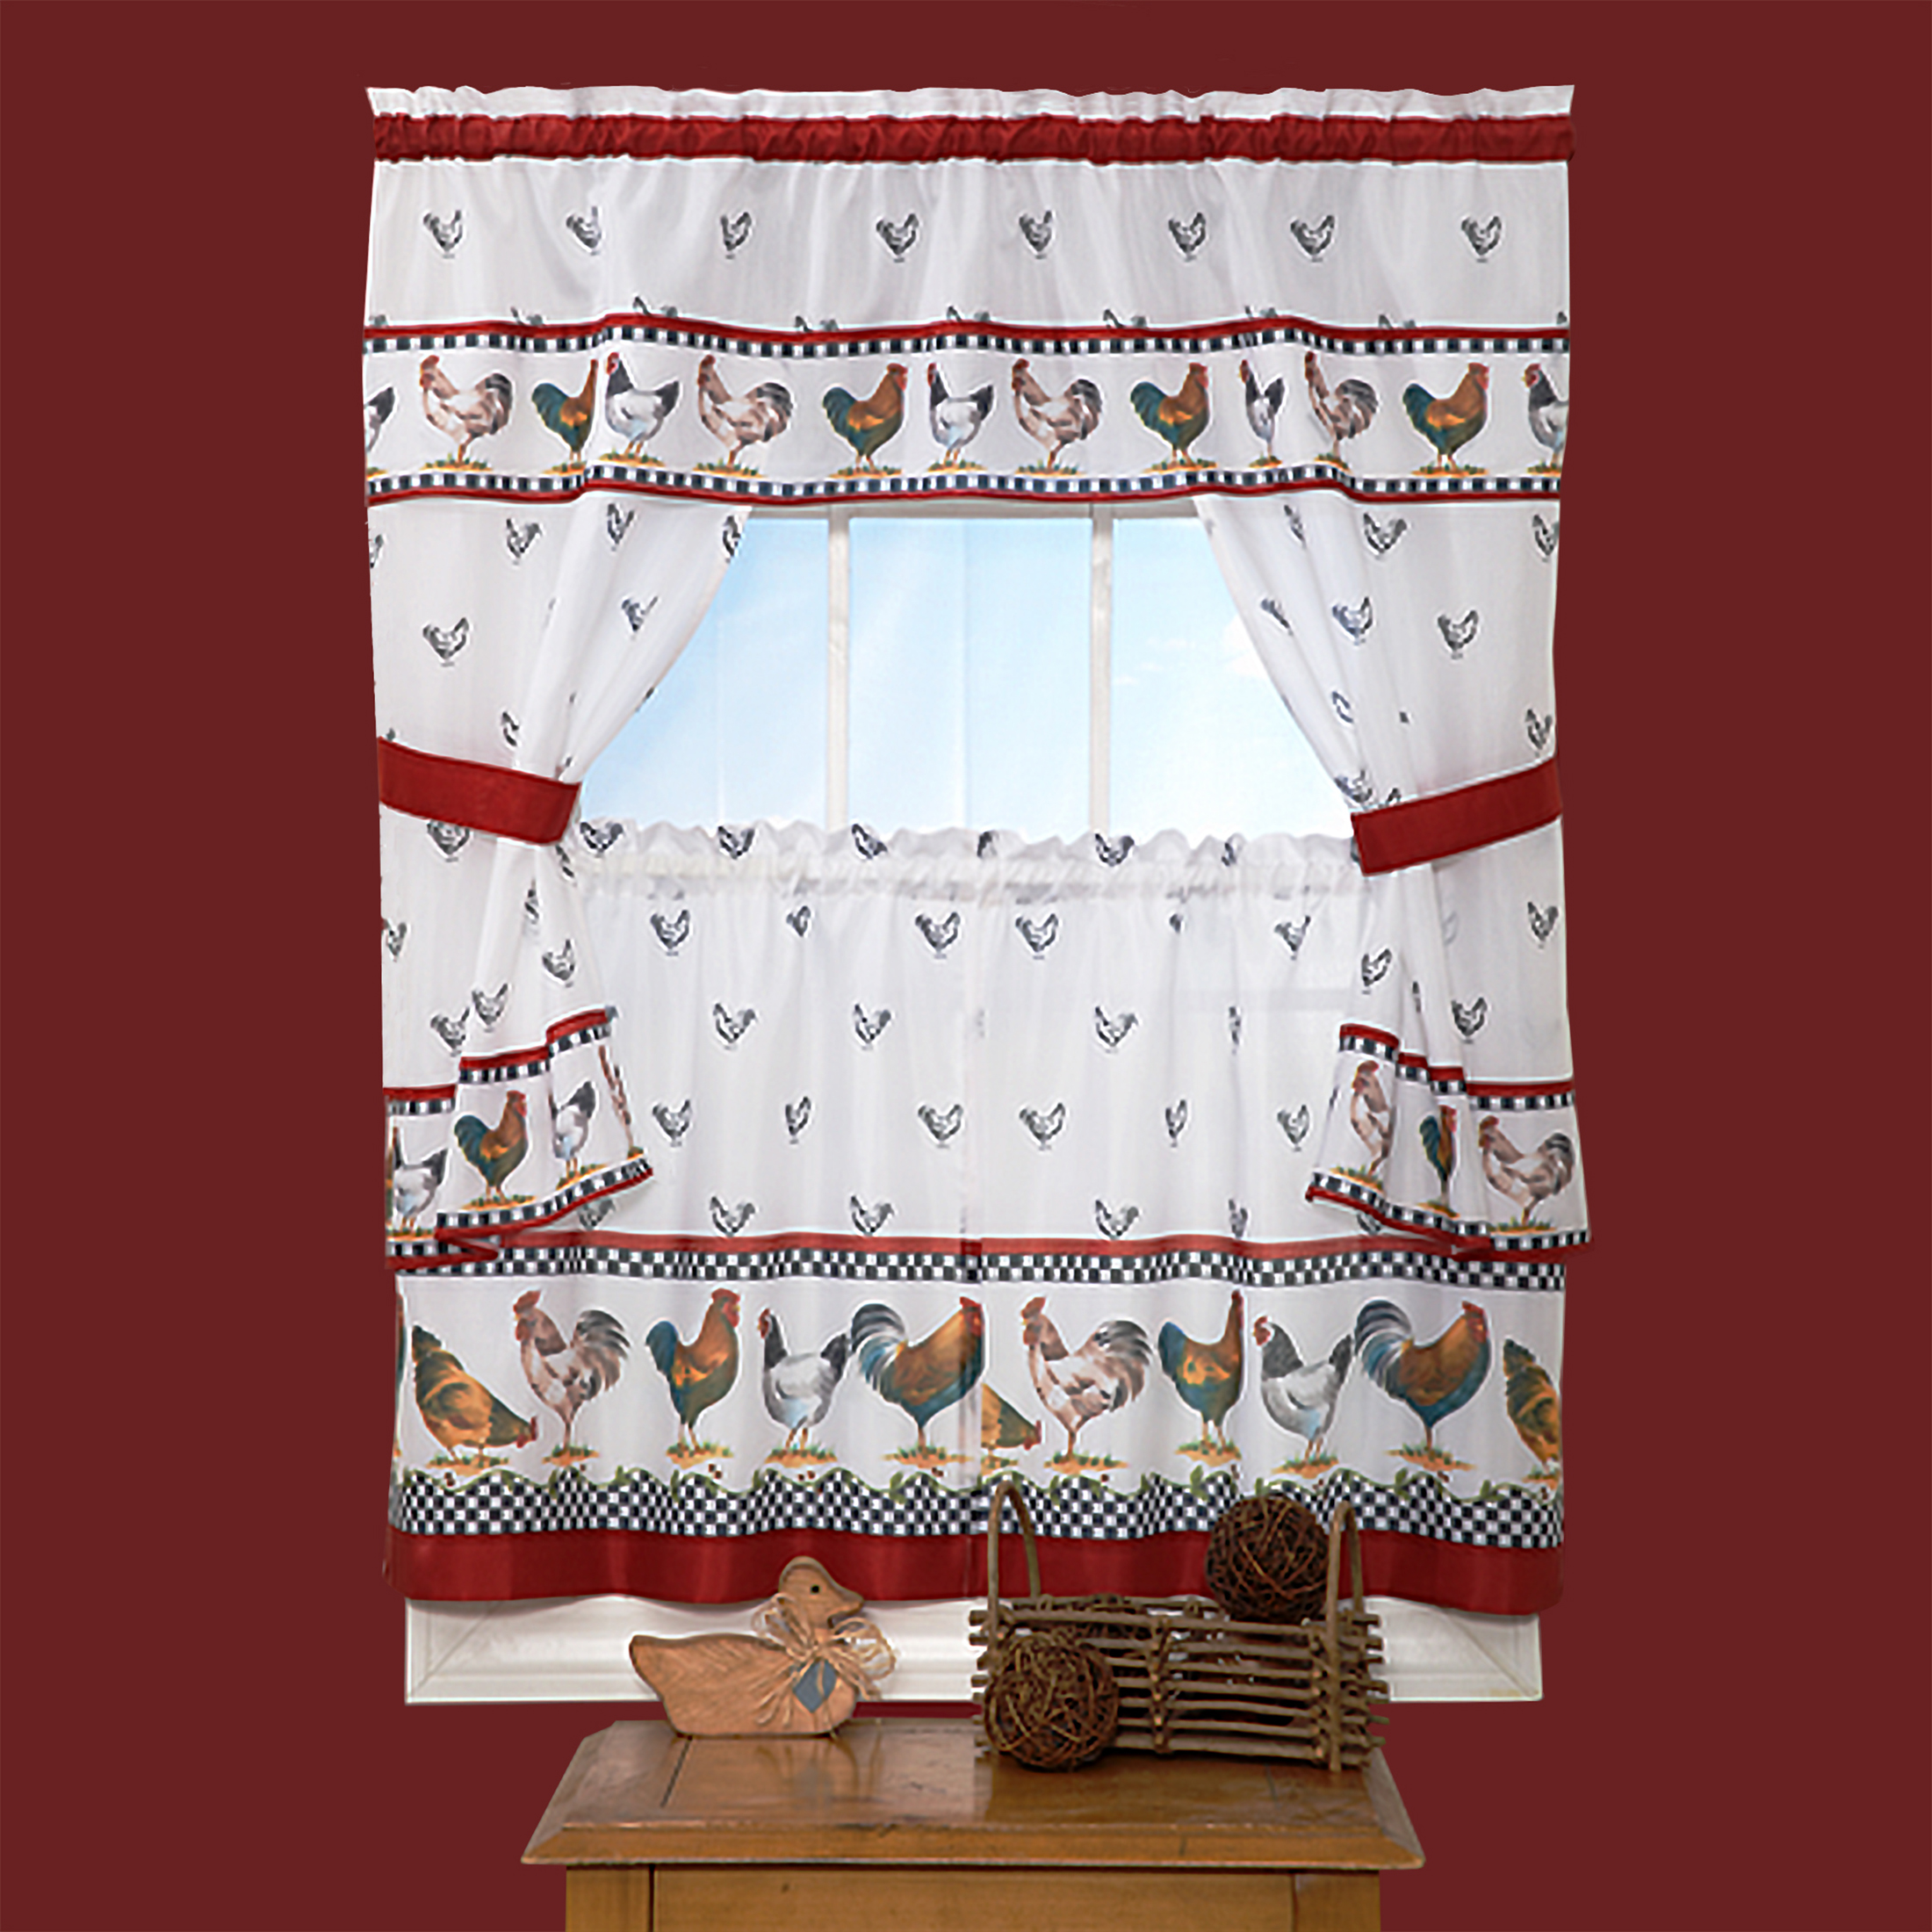 woven trends 5 piece kitchen curtain cottage set ruffled window cafe curtains with attached swaggers valance and tier panels rooster kitchen